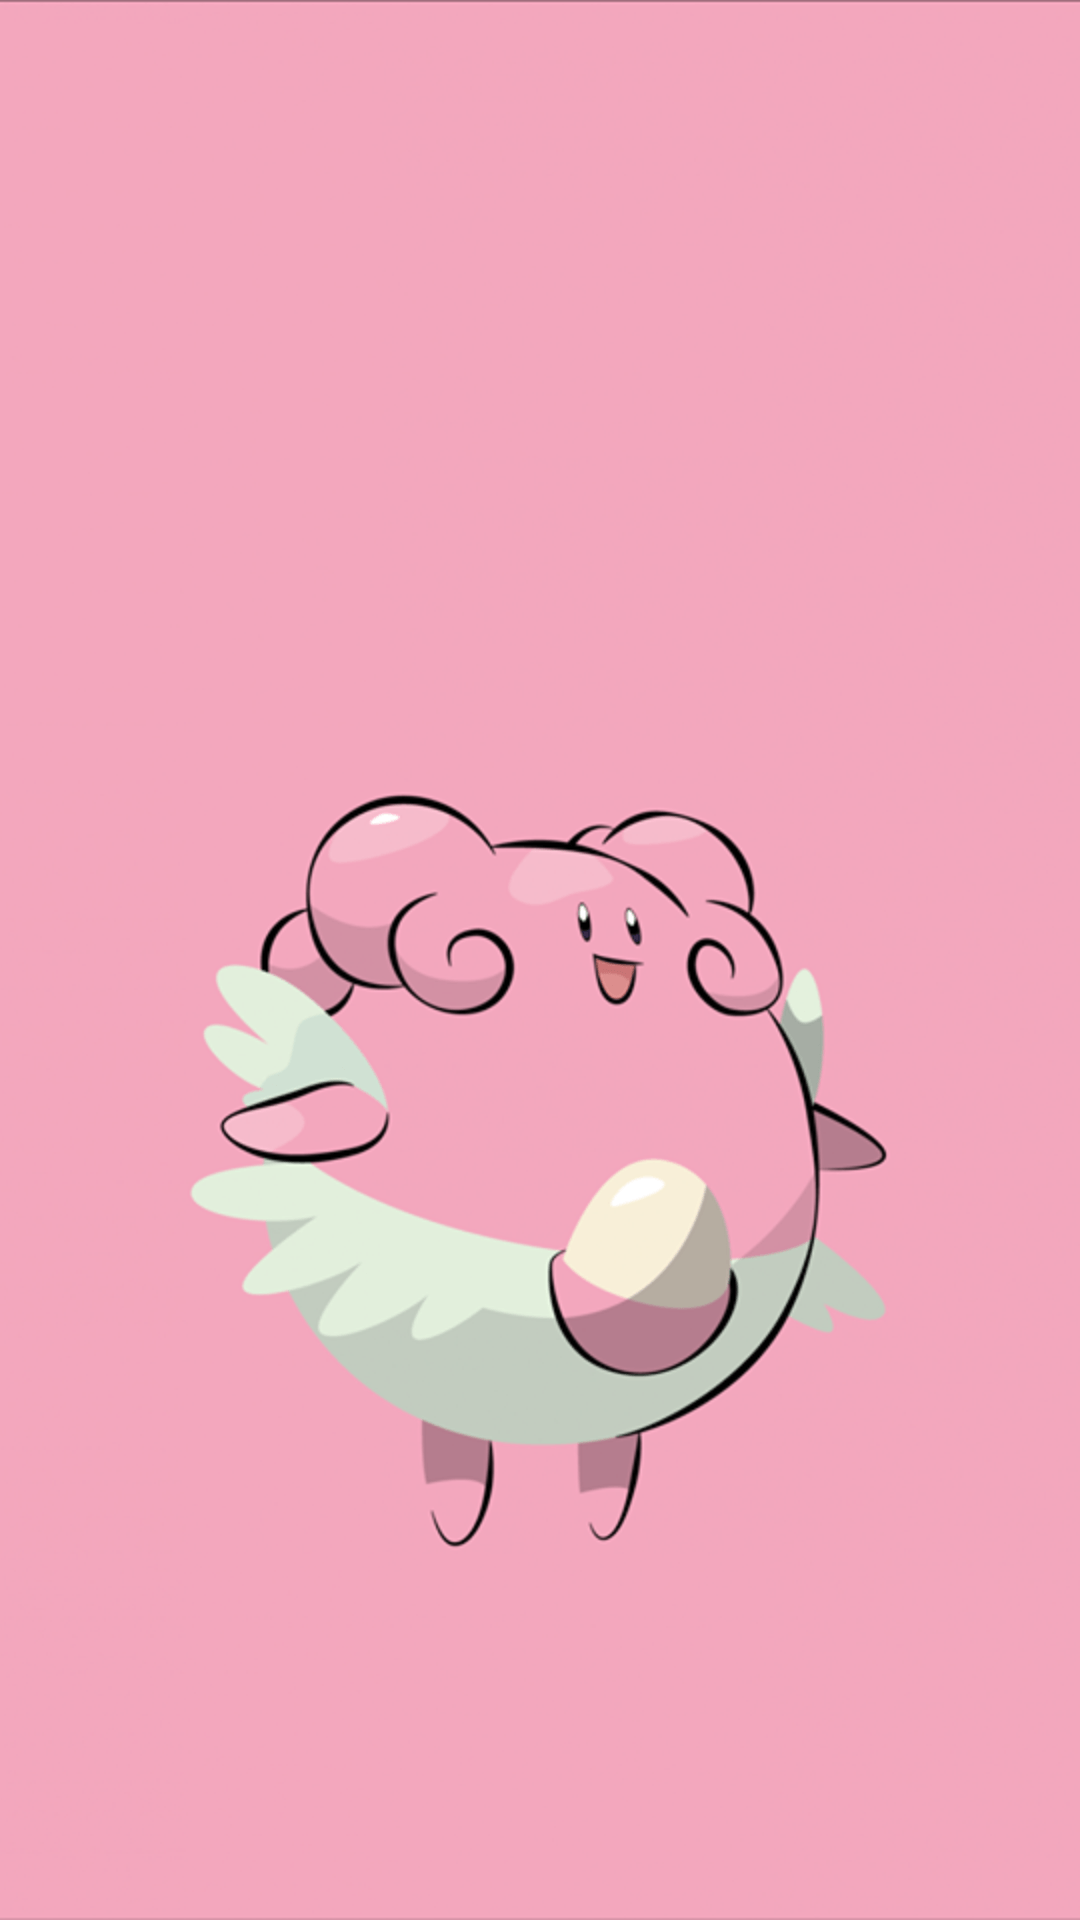 Download Blissey 1080 x 1920 Wallpapers